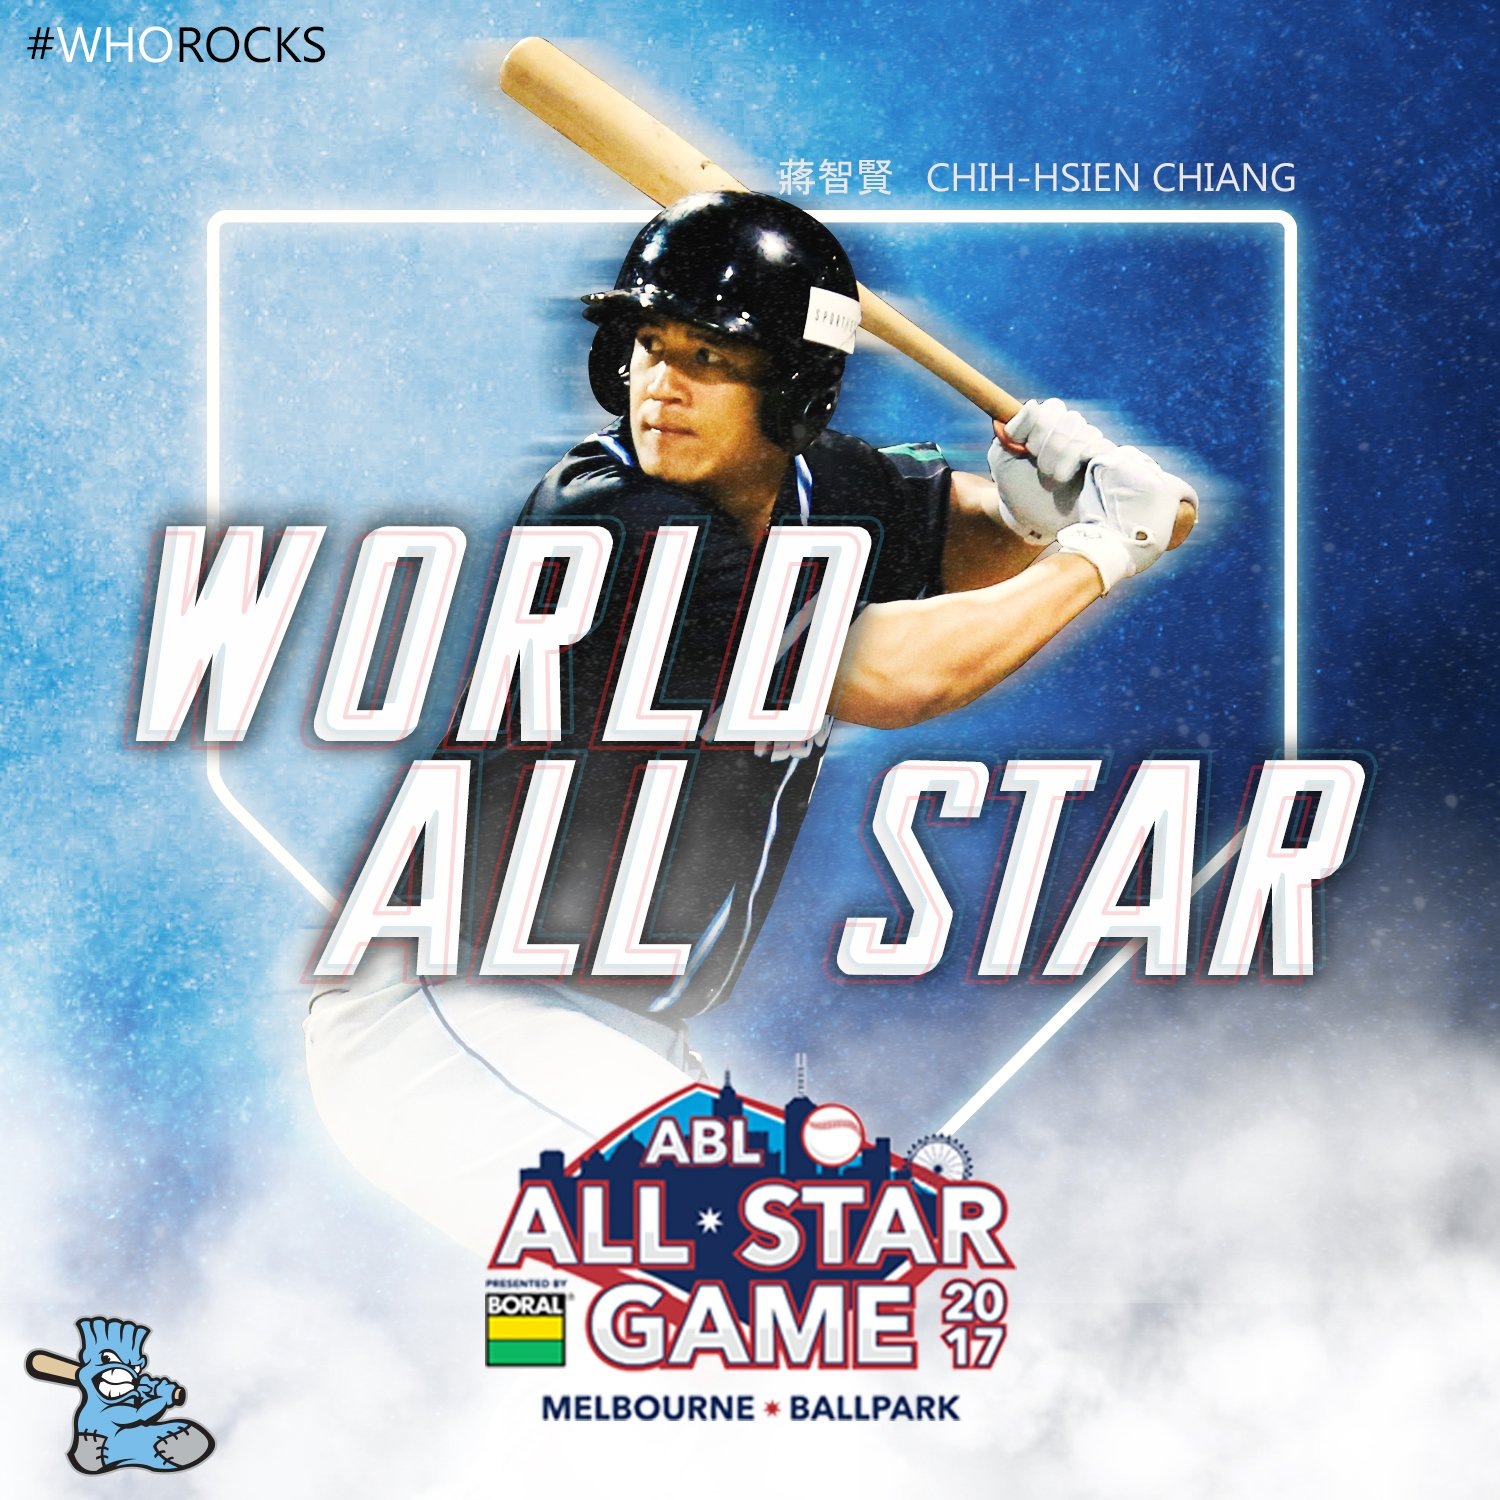 Chiang Chih-Hsien named ABL All-Star